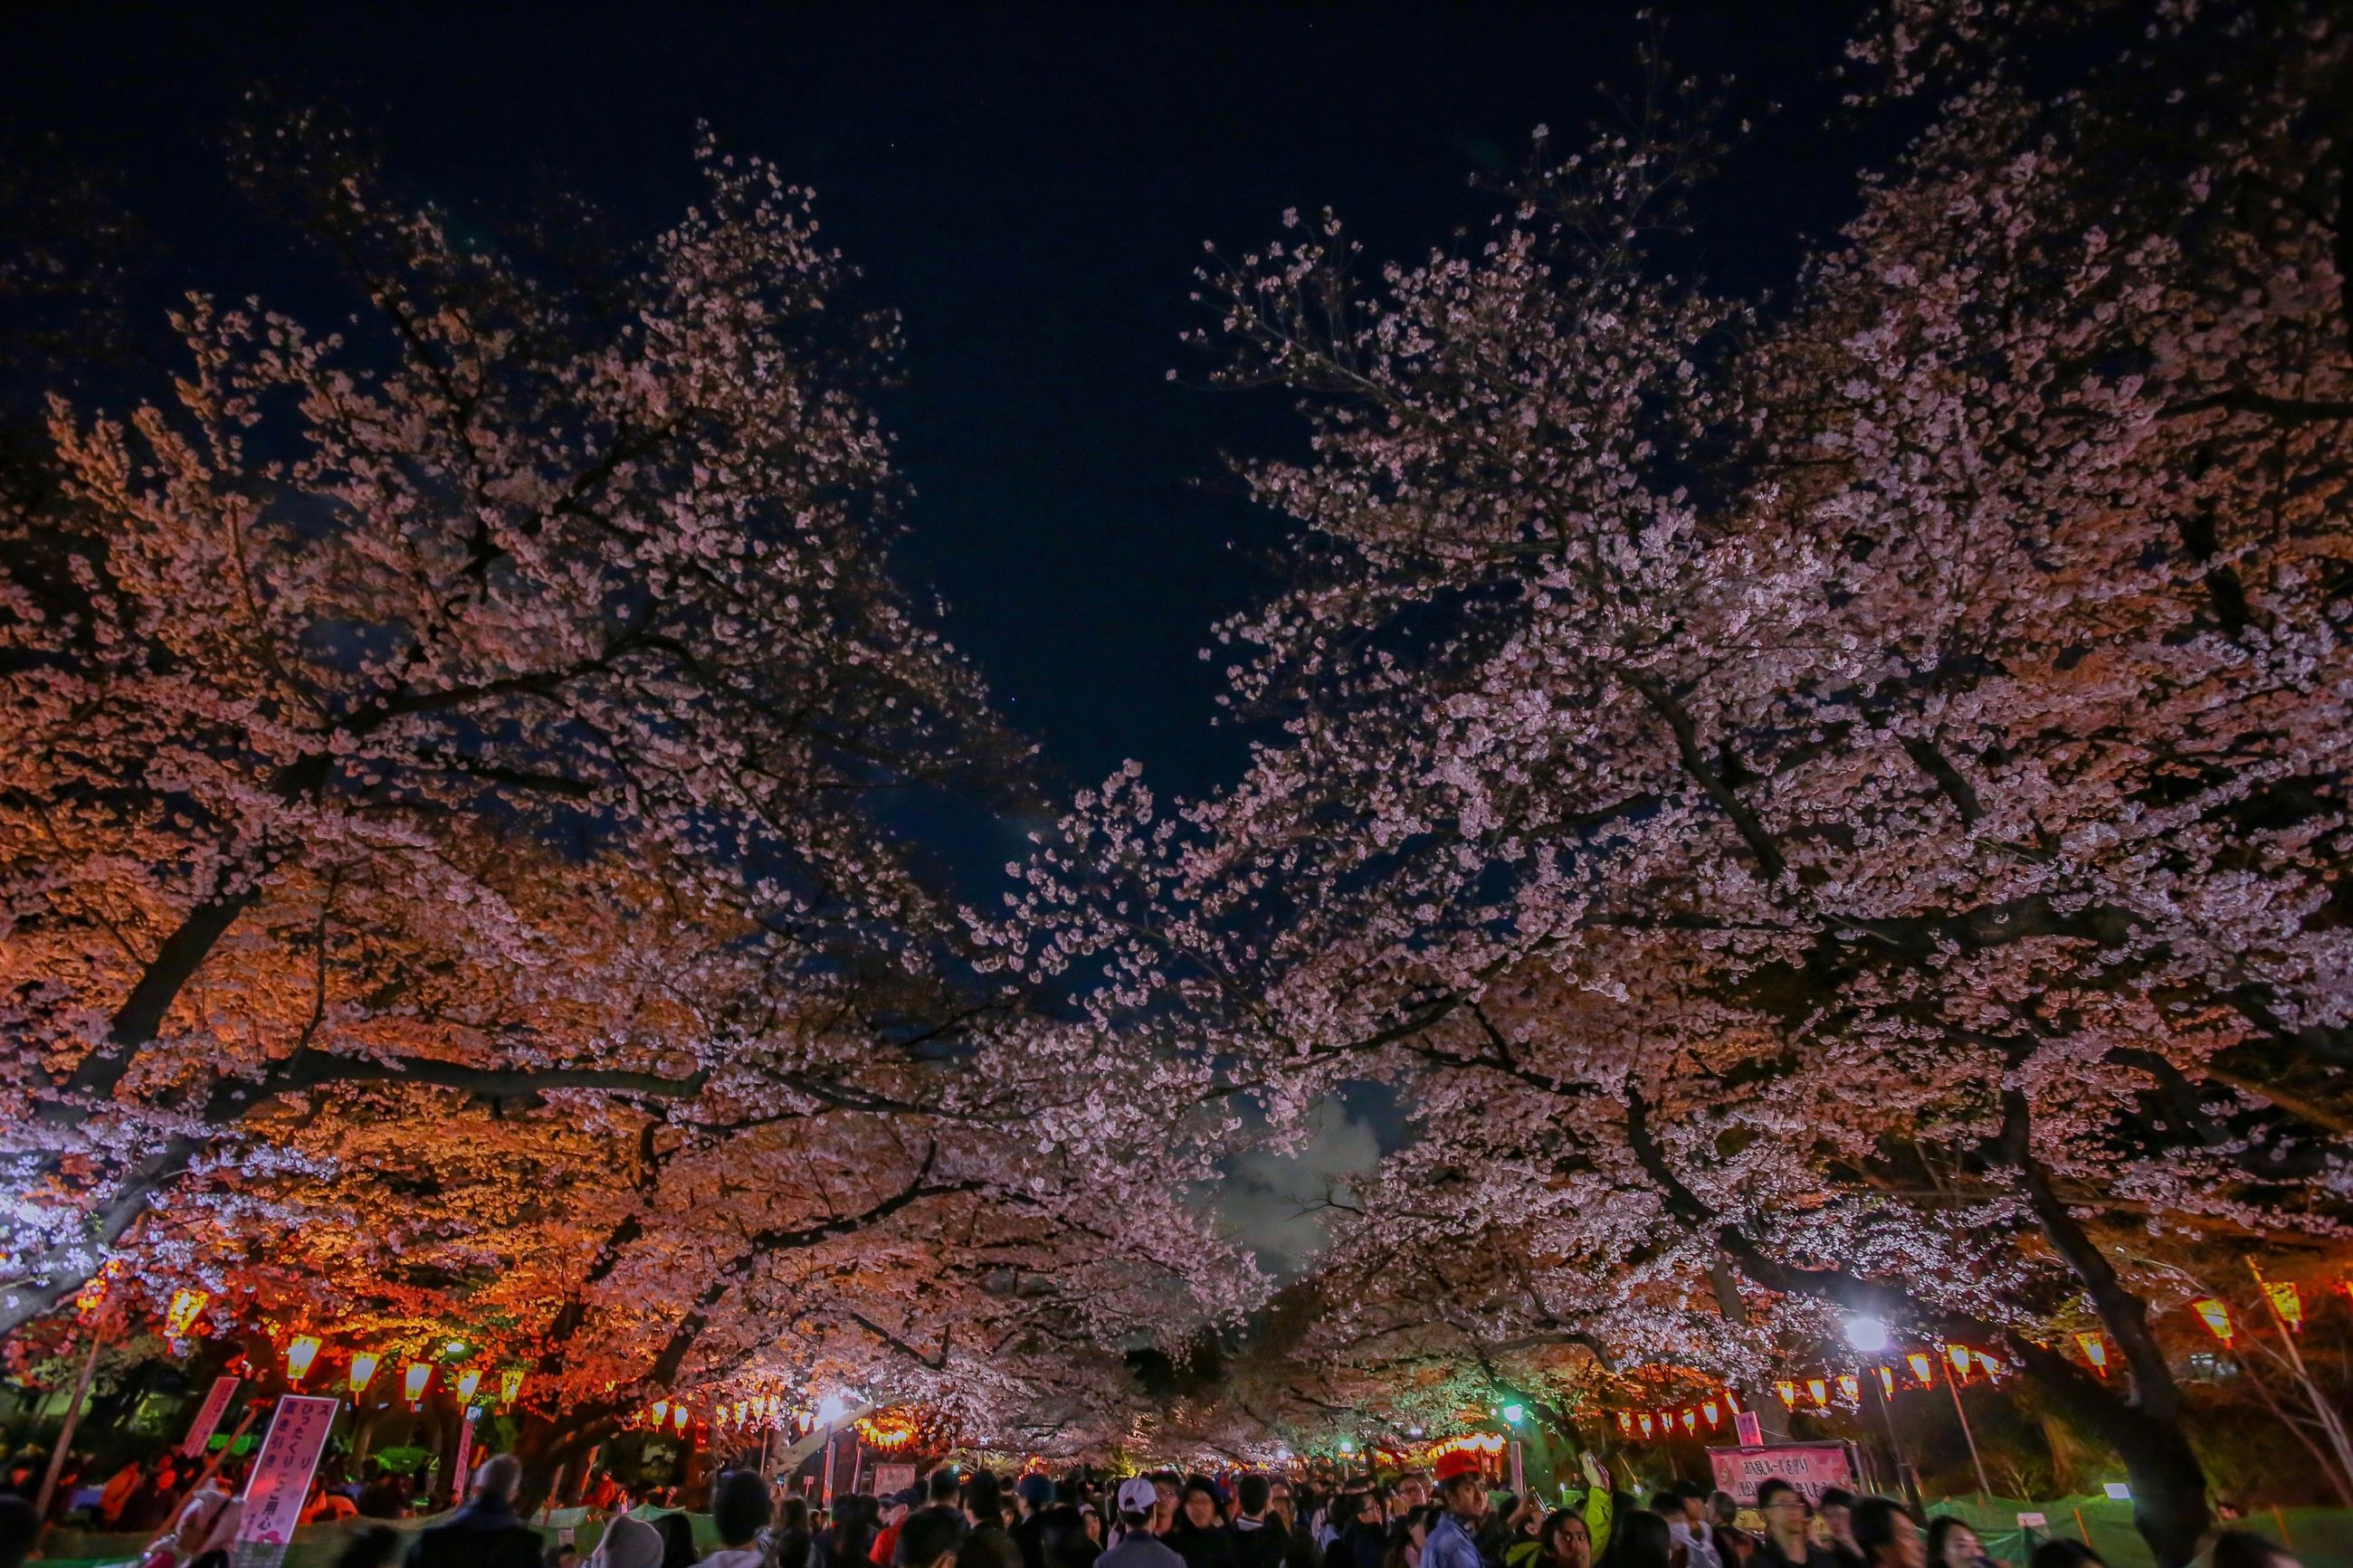 tree, plant, night, growth, beauty in nature, nature, flower, flowering plant, group of people, outdoors, incidental people, branch, fragility, change, park, large group of people, illuminated, low angle view, cherry blossom, cherry tree